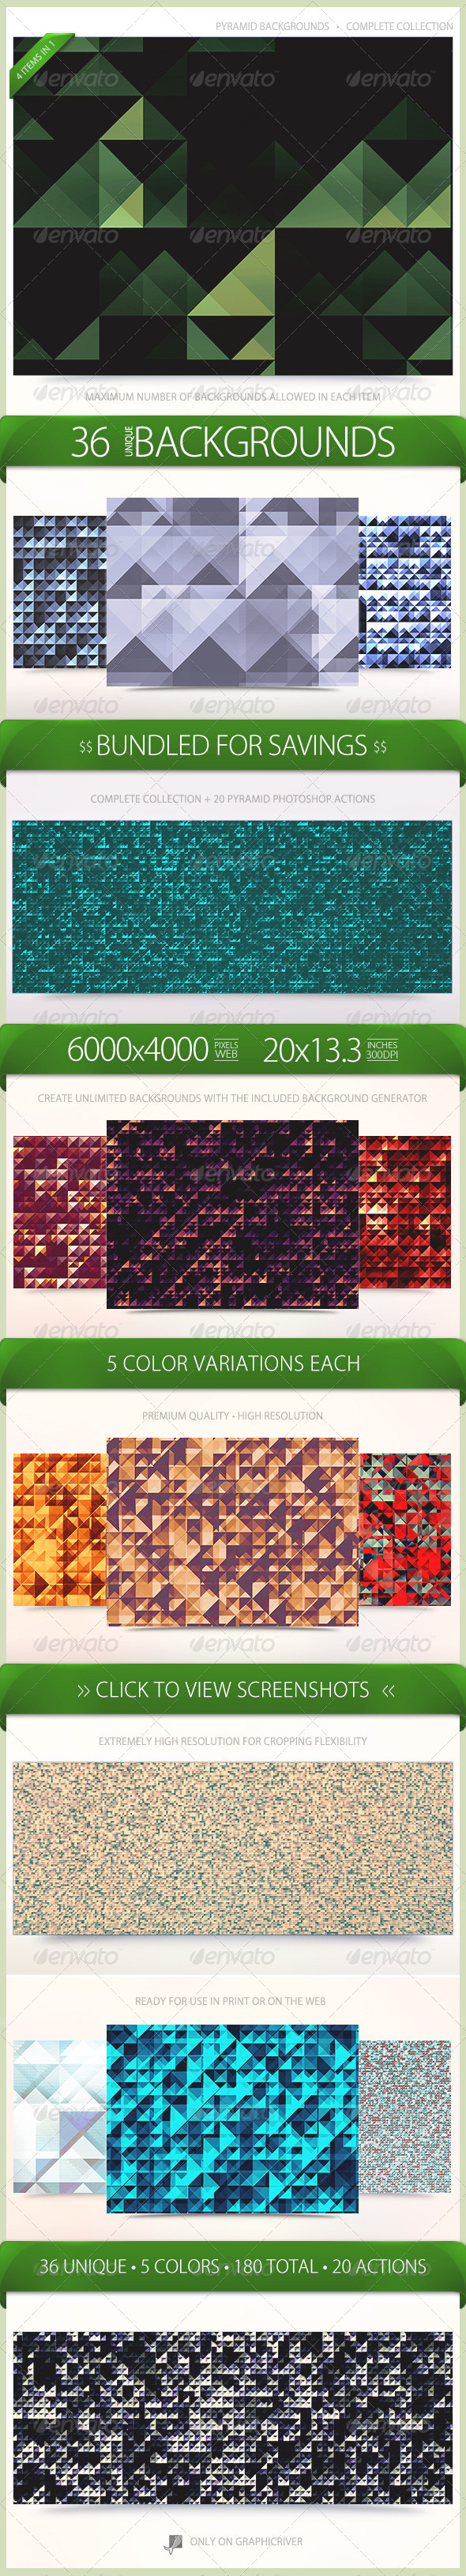 Pyramid Backgrounds Bundle - Patterns Backgrounds